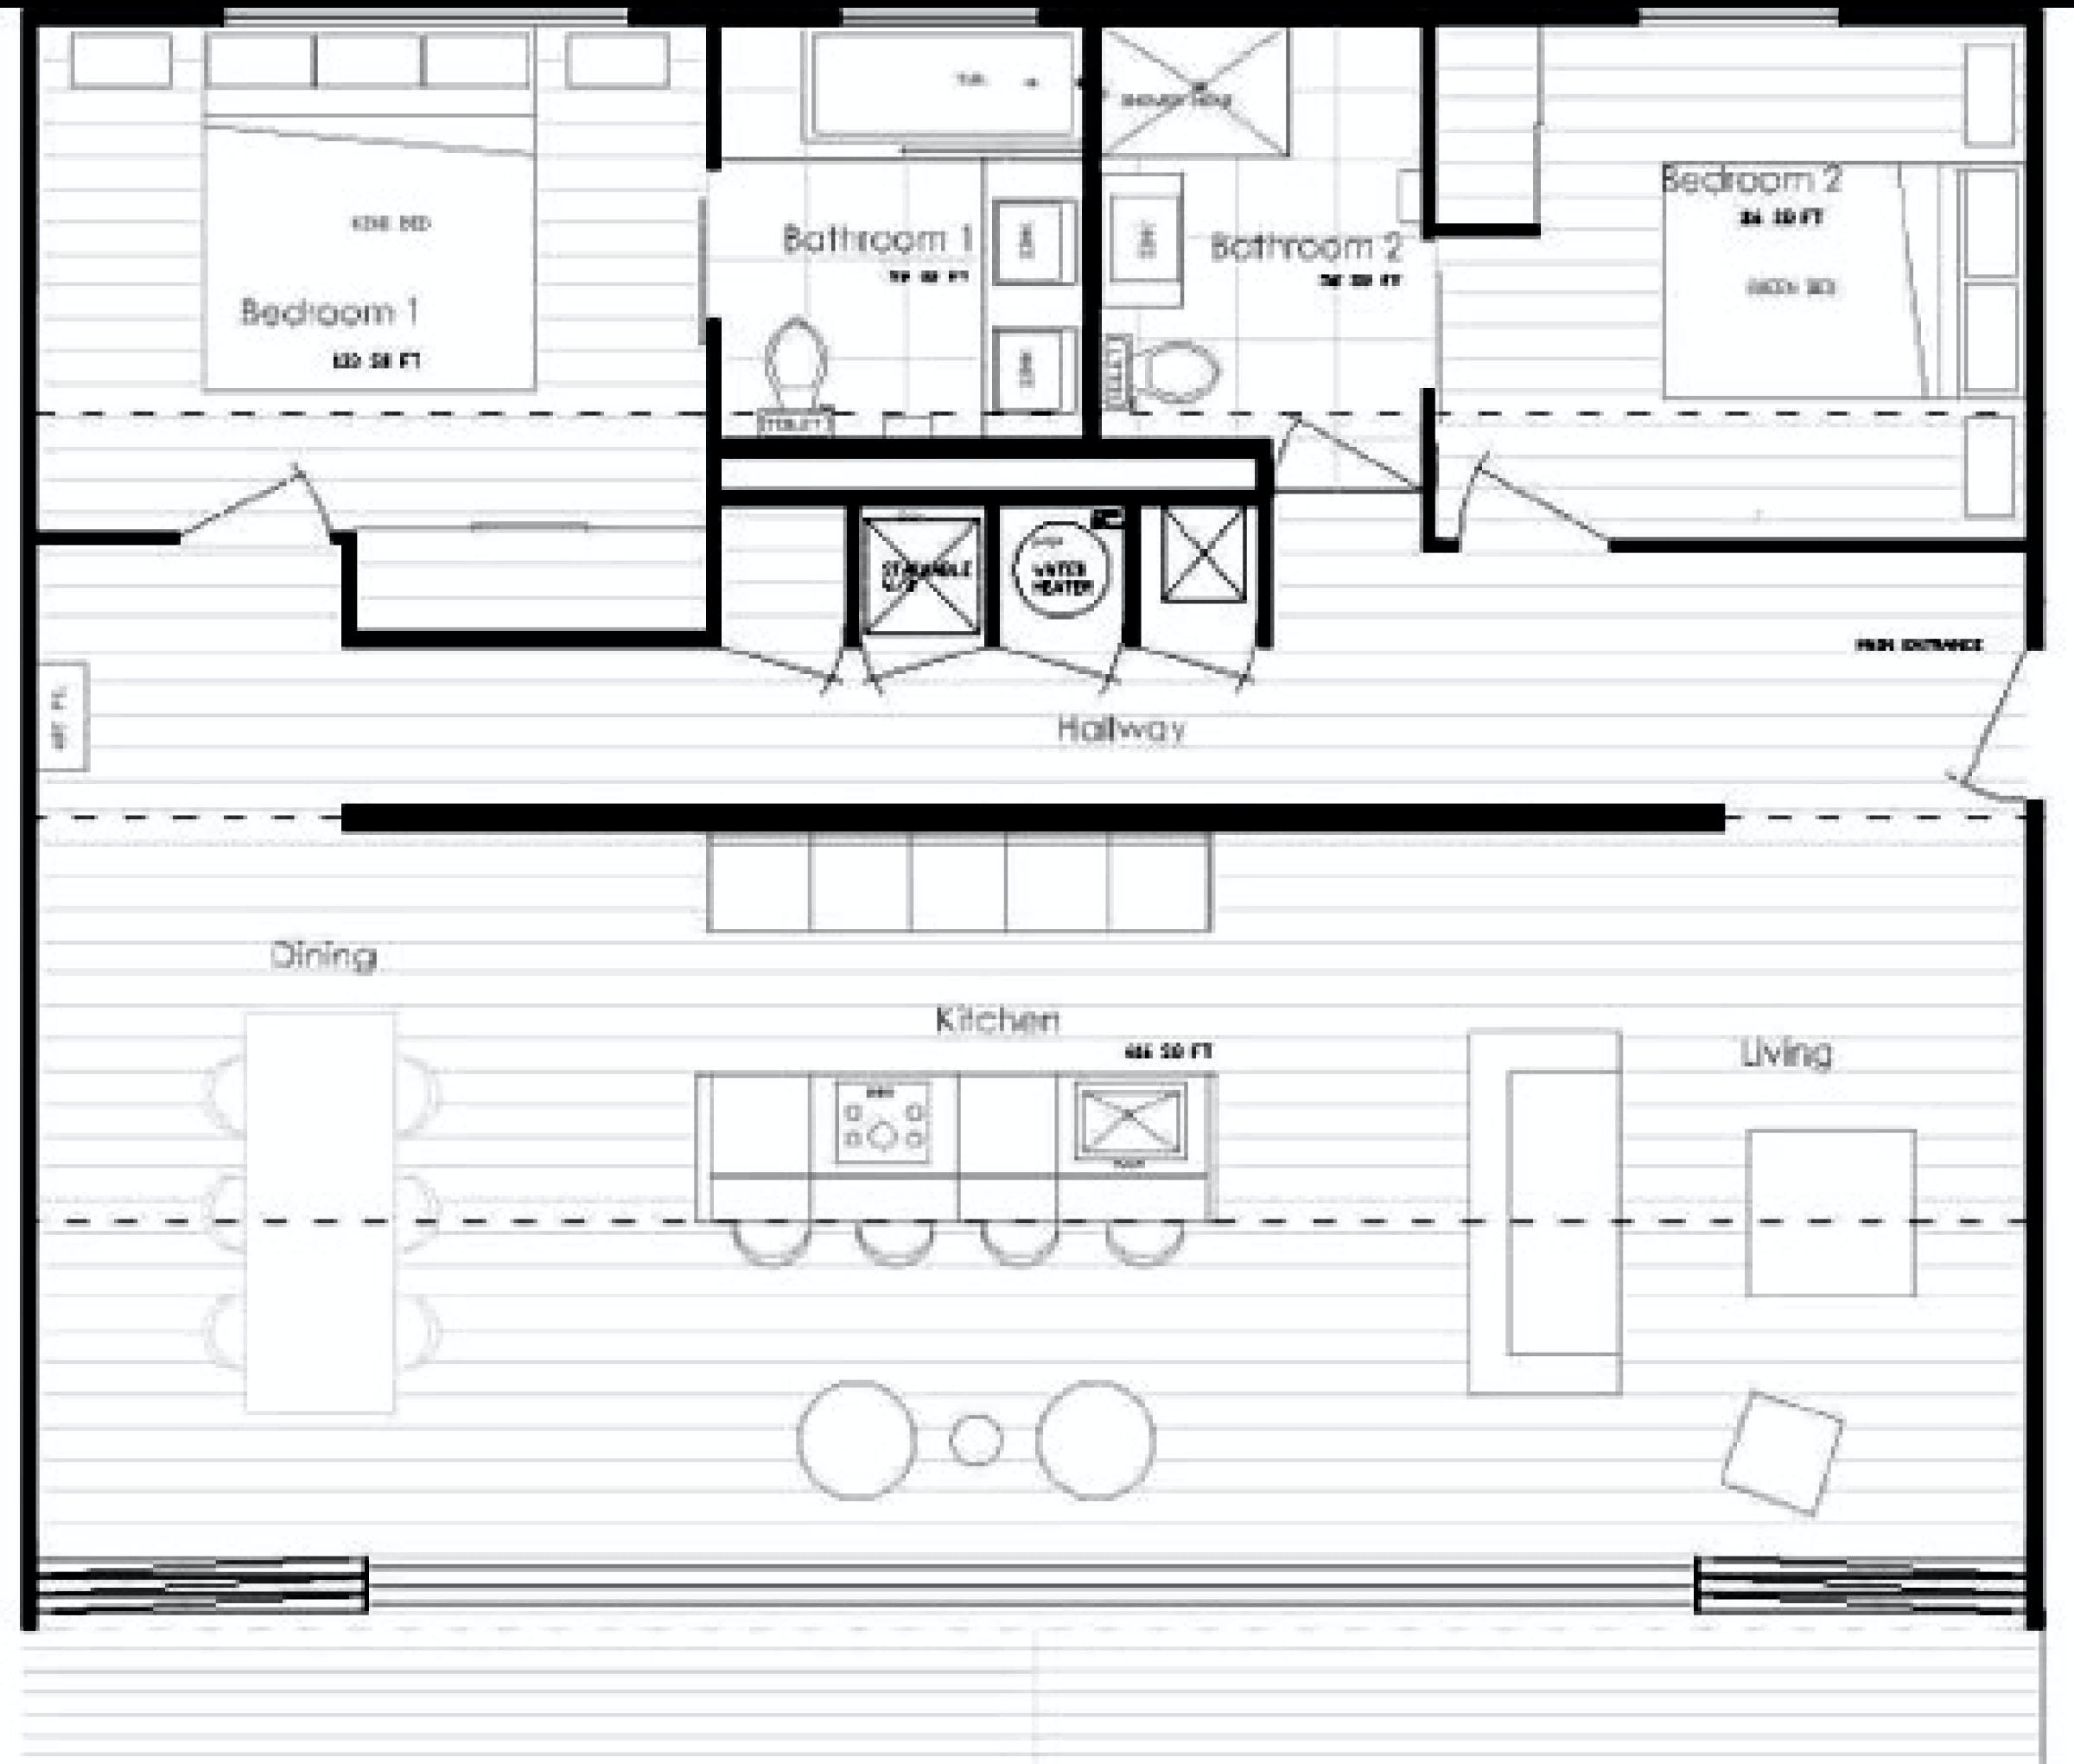 Iq hause christopher bord archinect - Shipping container home plans and drawings ...